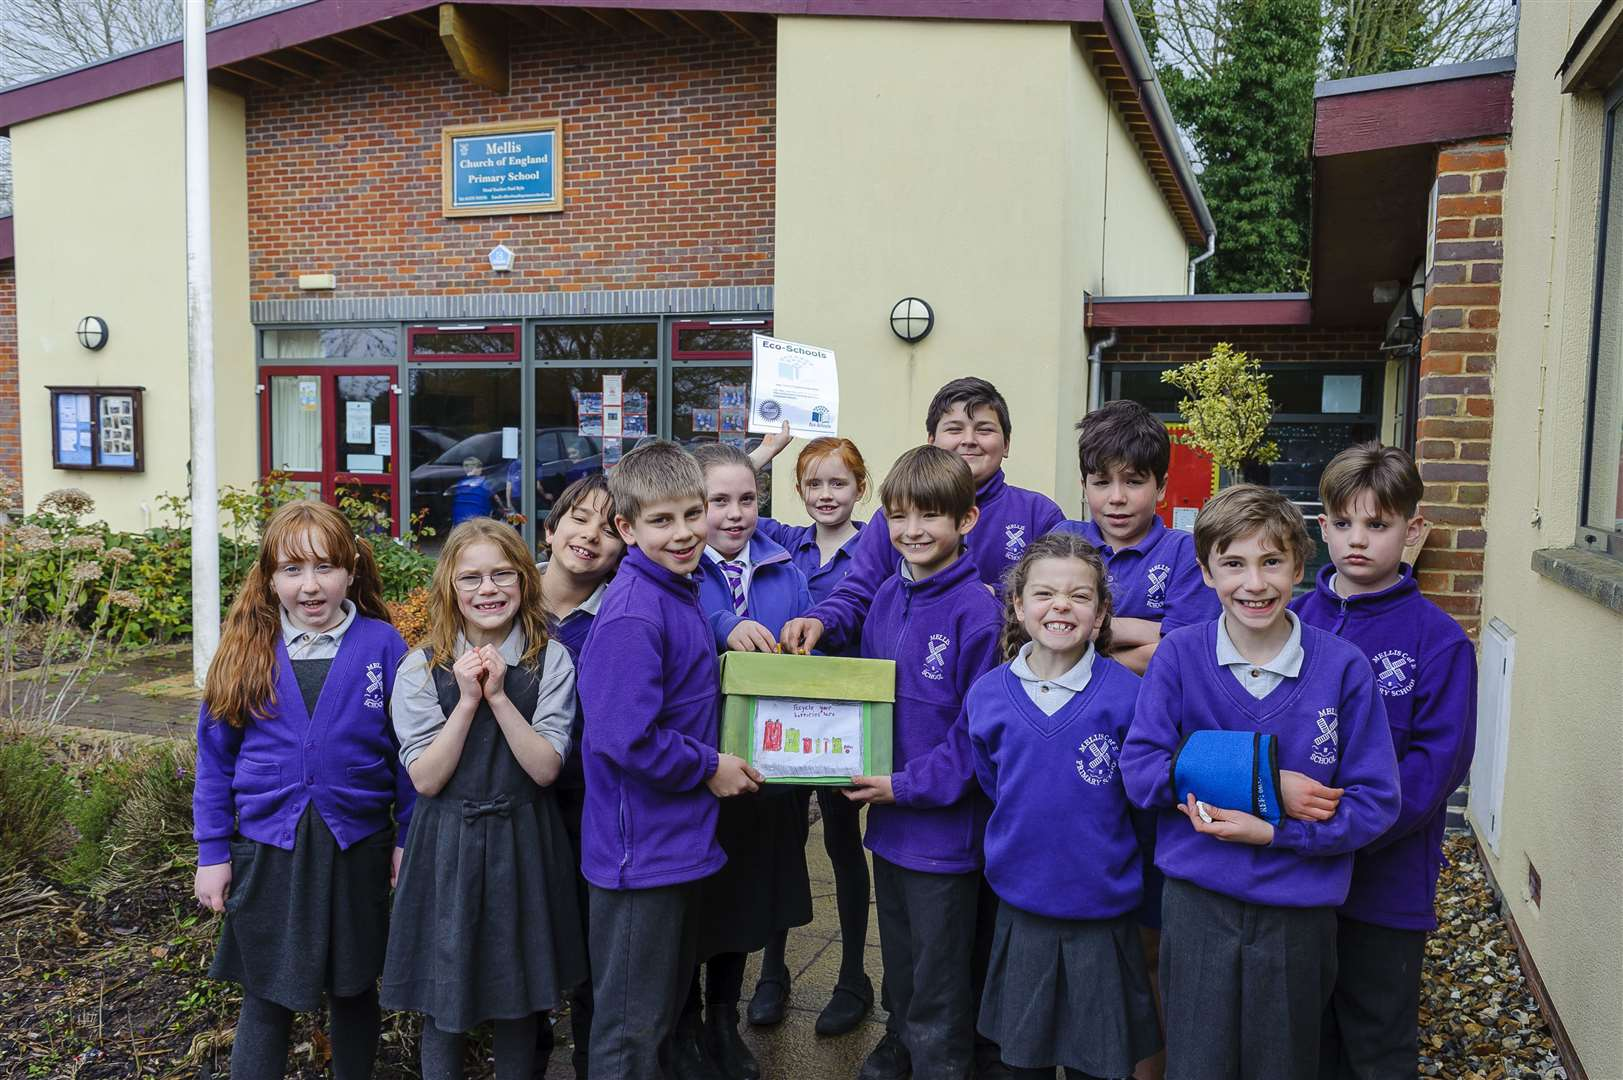 Mellis Primary School pupils are celebrating achieving the Eco-Schools Silver Award. Picture by Mark Bullimore.